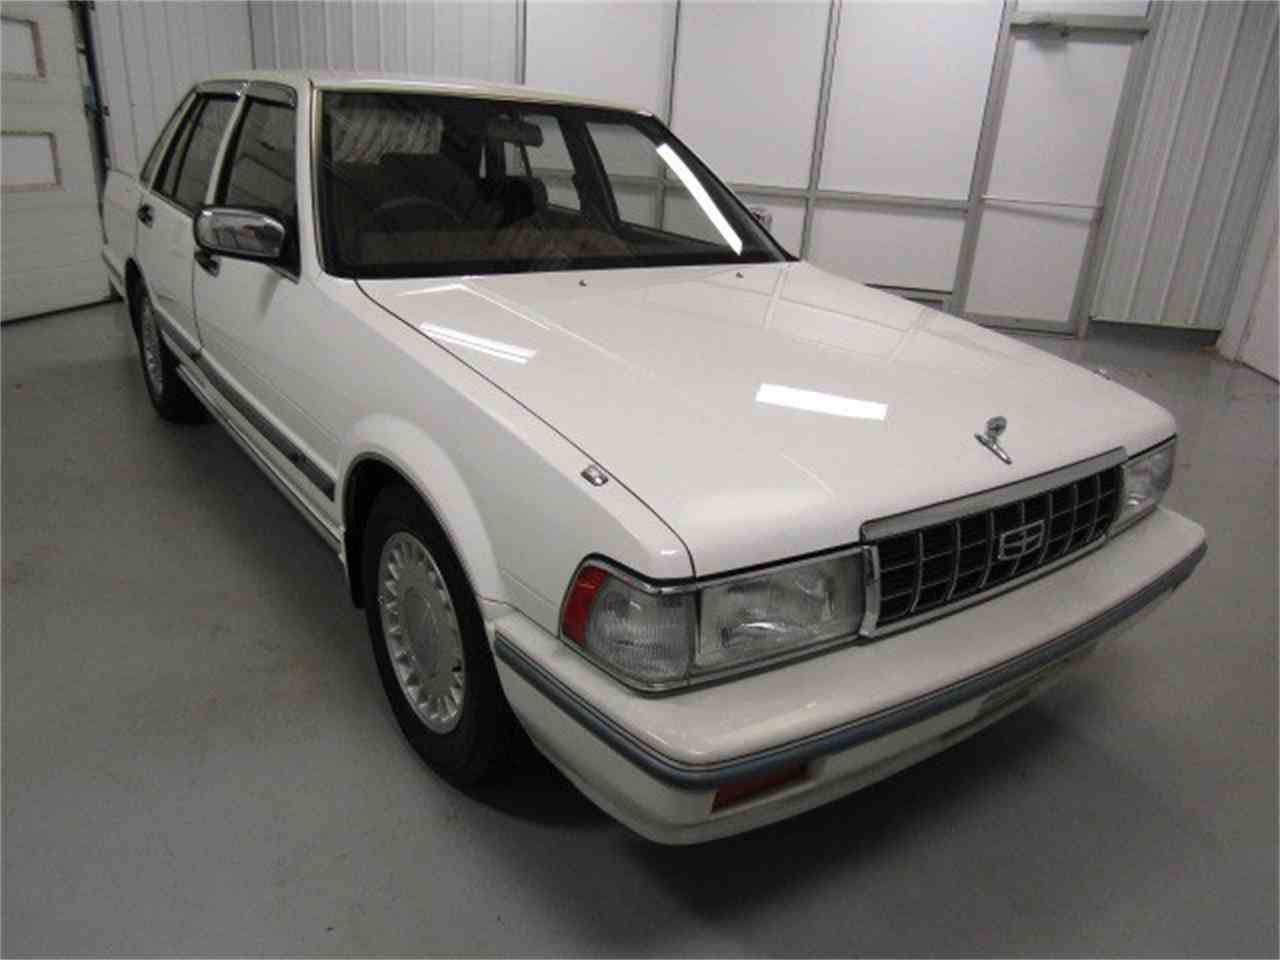 Large Picture of 1991 Nissan Gloria - $6,999.00 Offered by Duncan Imports & Classic Cars - JZ2U